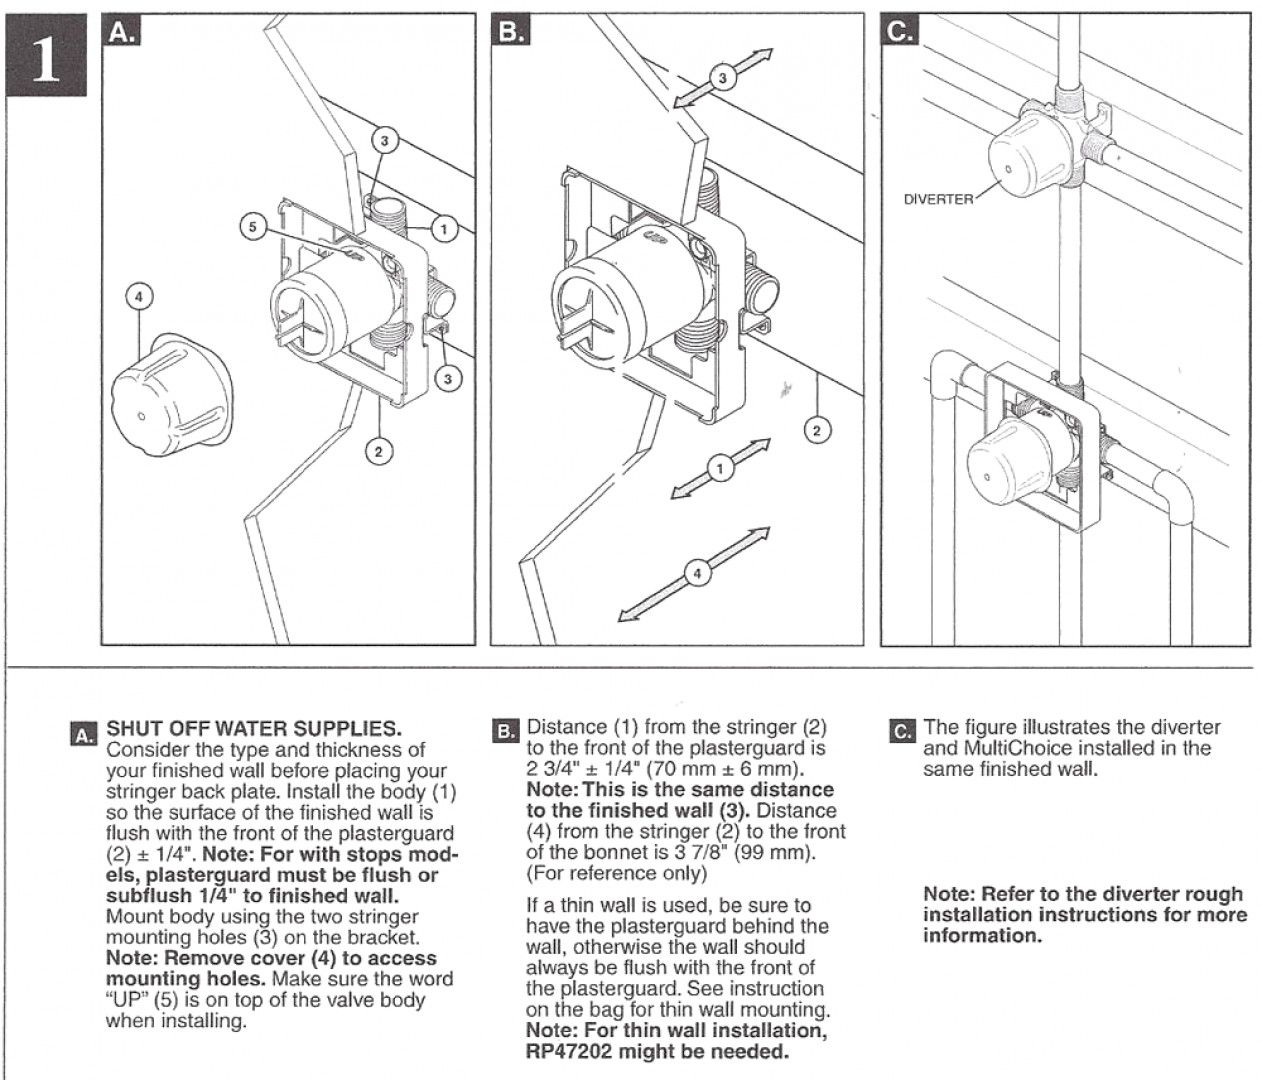 Leaky Shower Tub Faucets Manual Guide